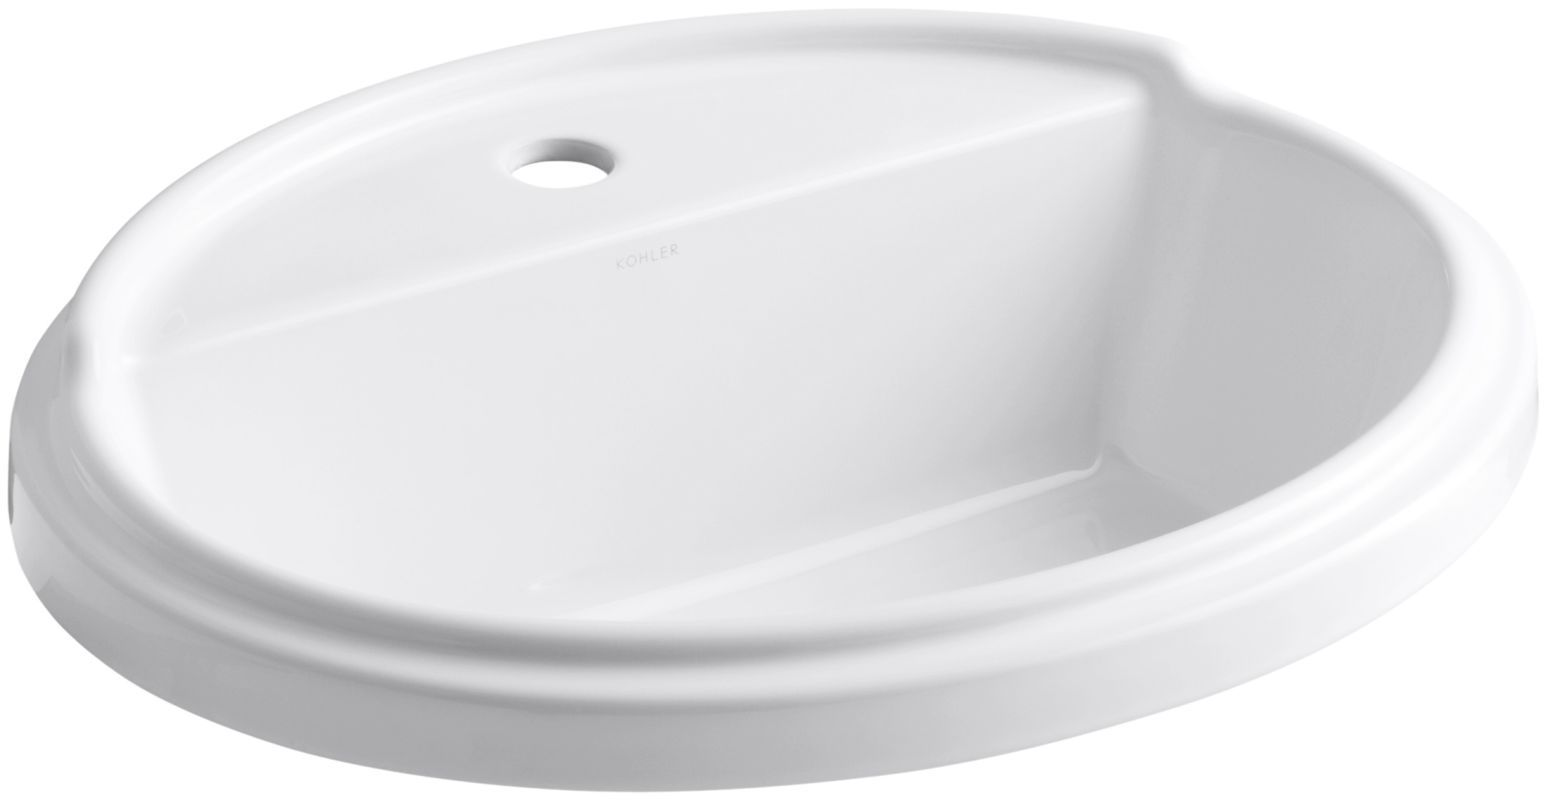 Kohler K 2992 1 Drop In Bathroom Sinks Bathroom Sink Faucets Sink Faucets